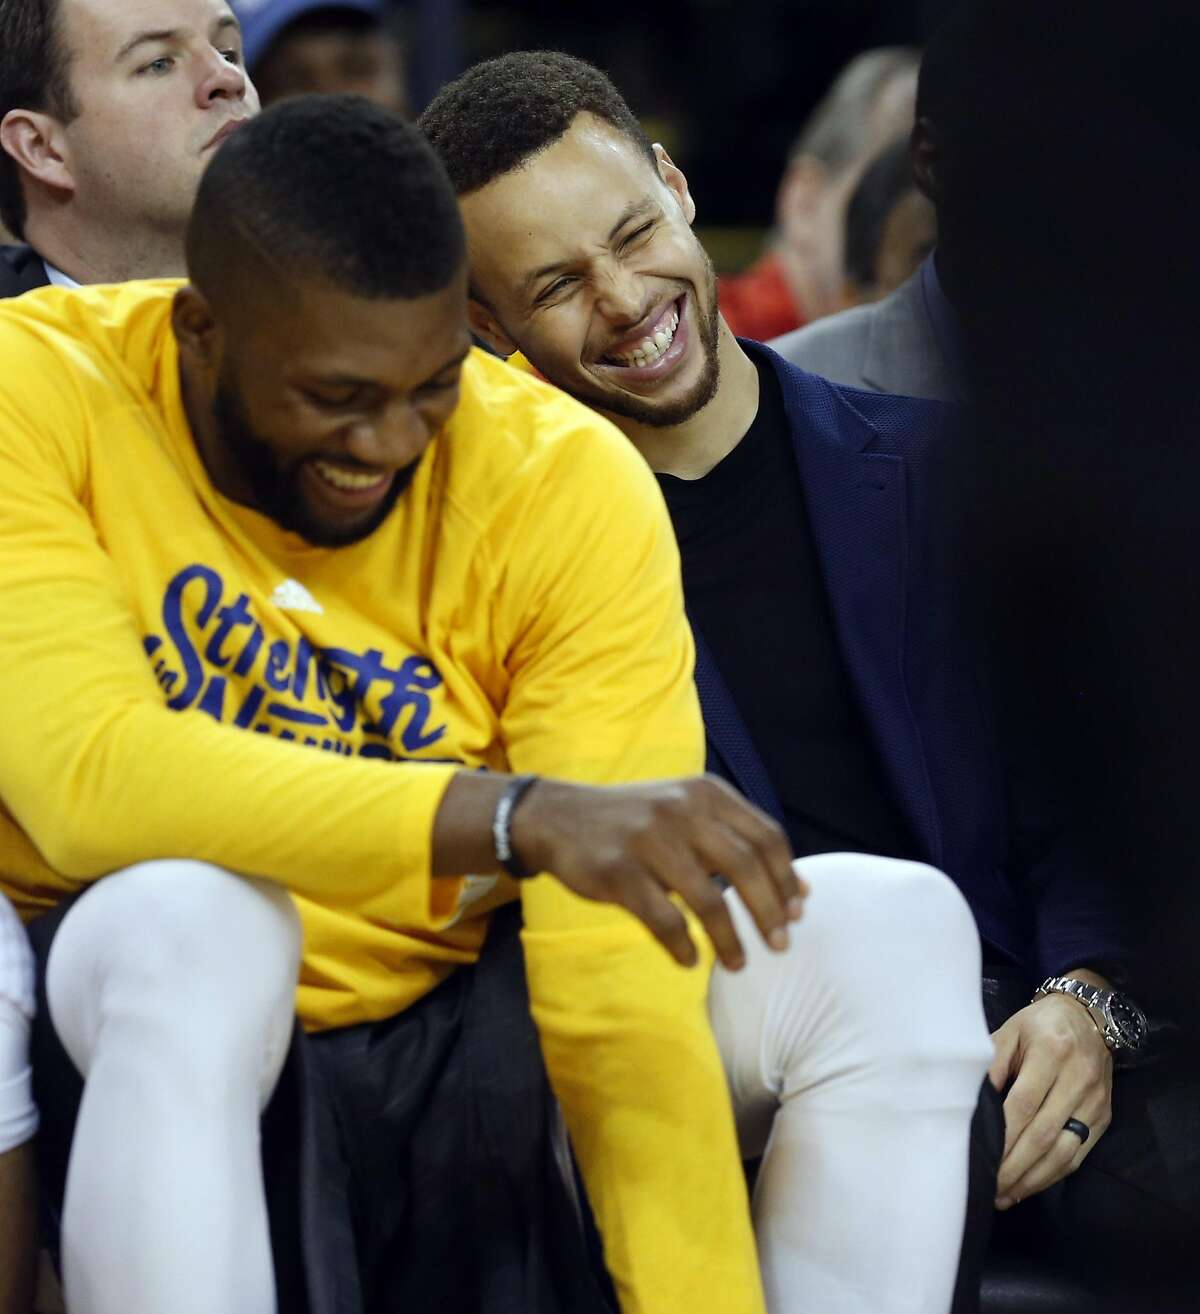 Golden State Warriors' Stephen Curry and Festus Ezeli enjoy themselves in 2nd quarter against Portland Trail Blazers during Game 1 of NBA Playoffs' Western Conference Semifinals at Oracle Arena in Oakland, Calif., on Sunday, May 1, 2016.